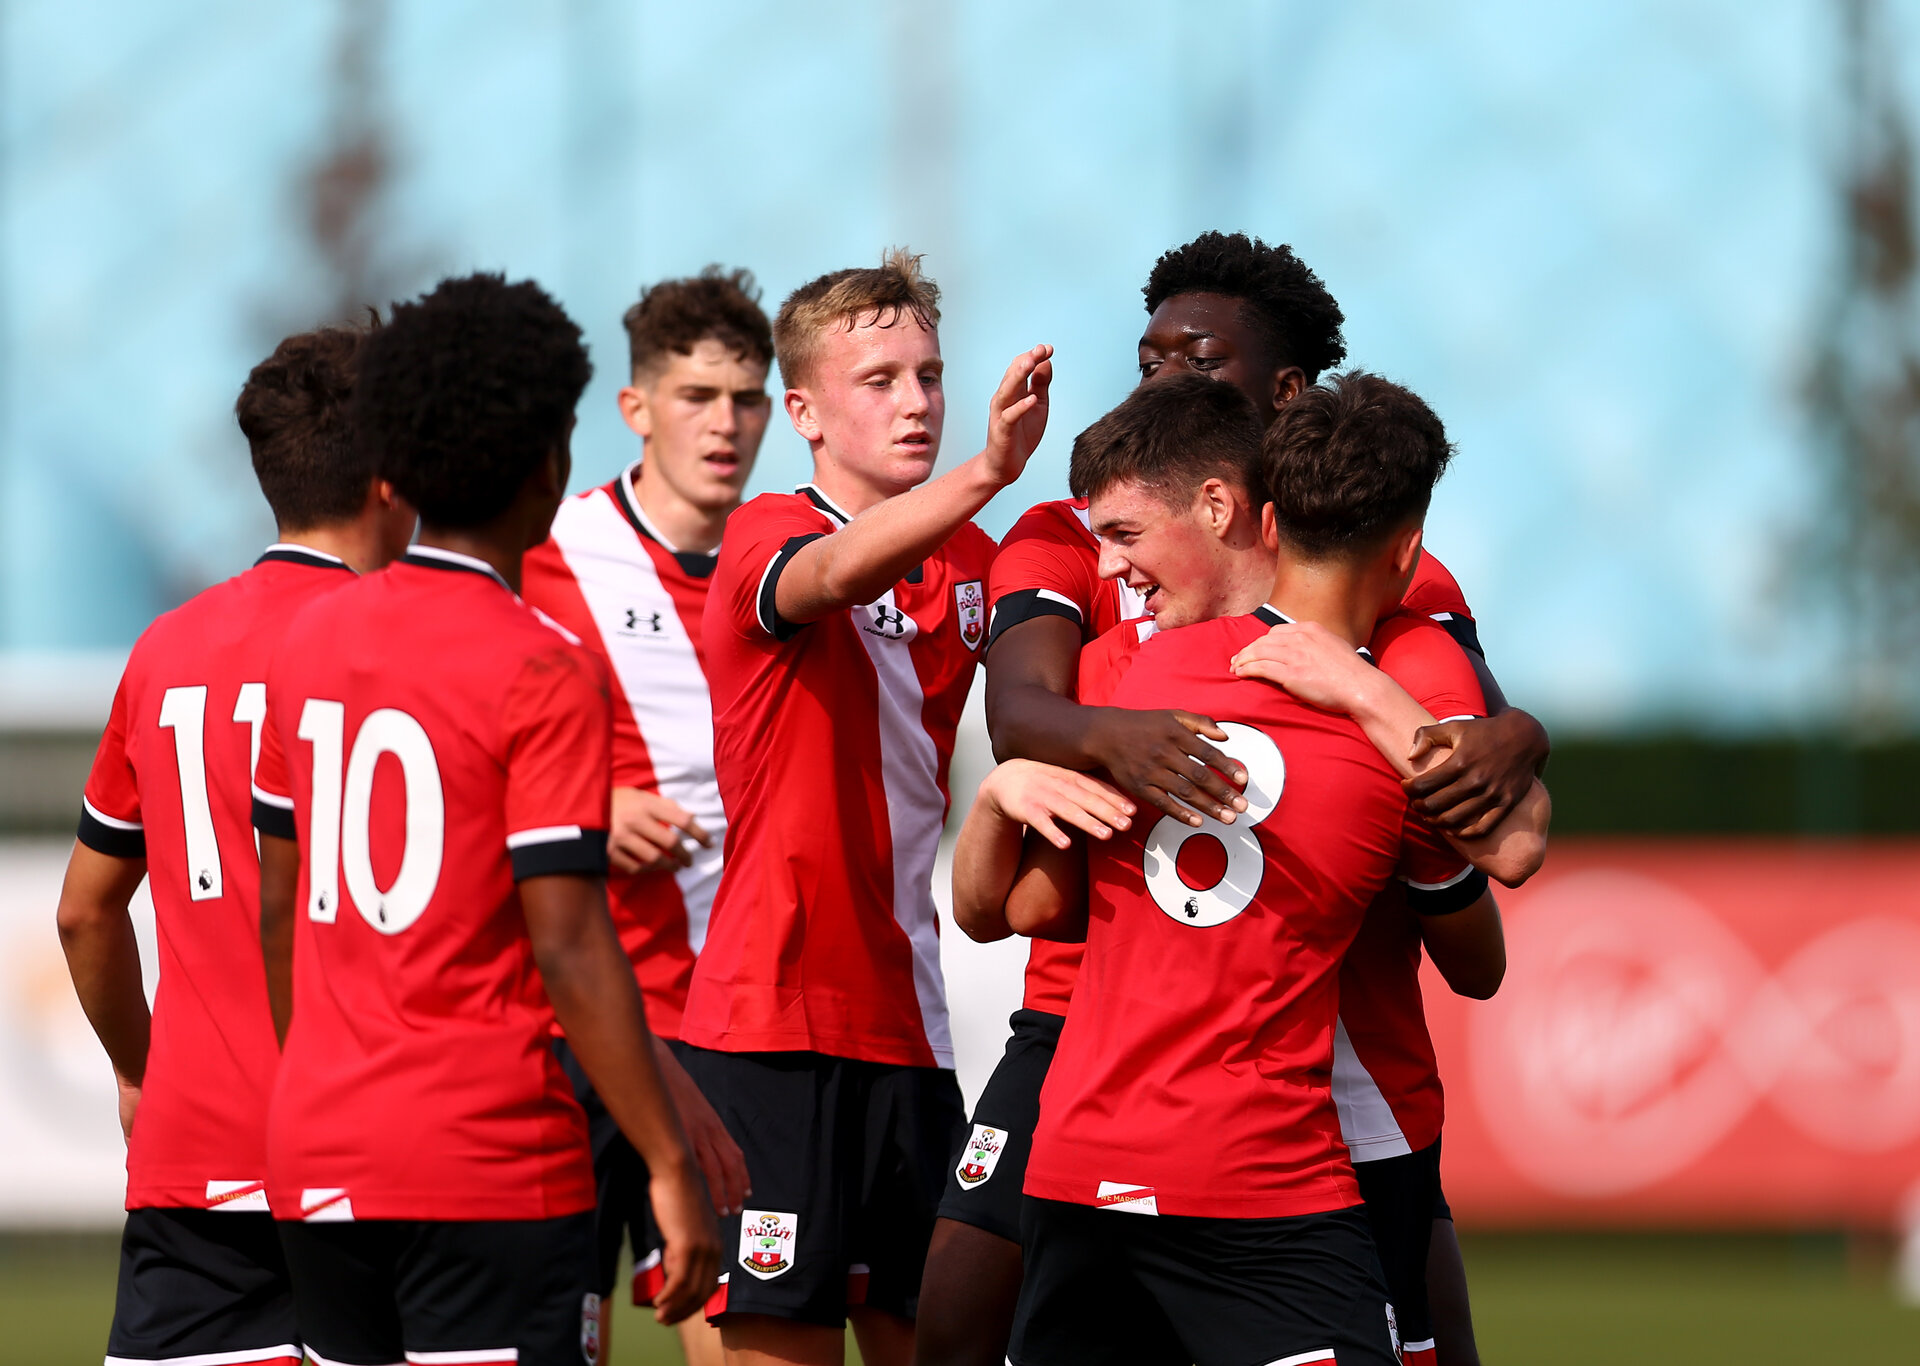 SOUTHAMPTON, ENGLAND - SEPTEMBER 19: southampton players celebrate Goran Babic goal during the Premier League U18 match between Southampton FC U18 and Crystal Palace FC at Staplewood Training Ground on September 19, 2020 in Southampton, England. (Photo by Isabelle Field/Southampton FC via Getty Images)